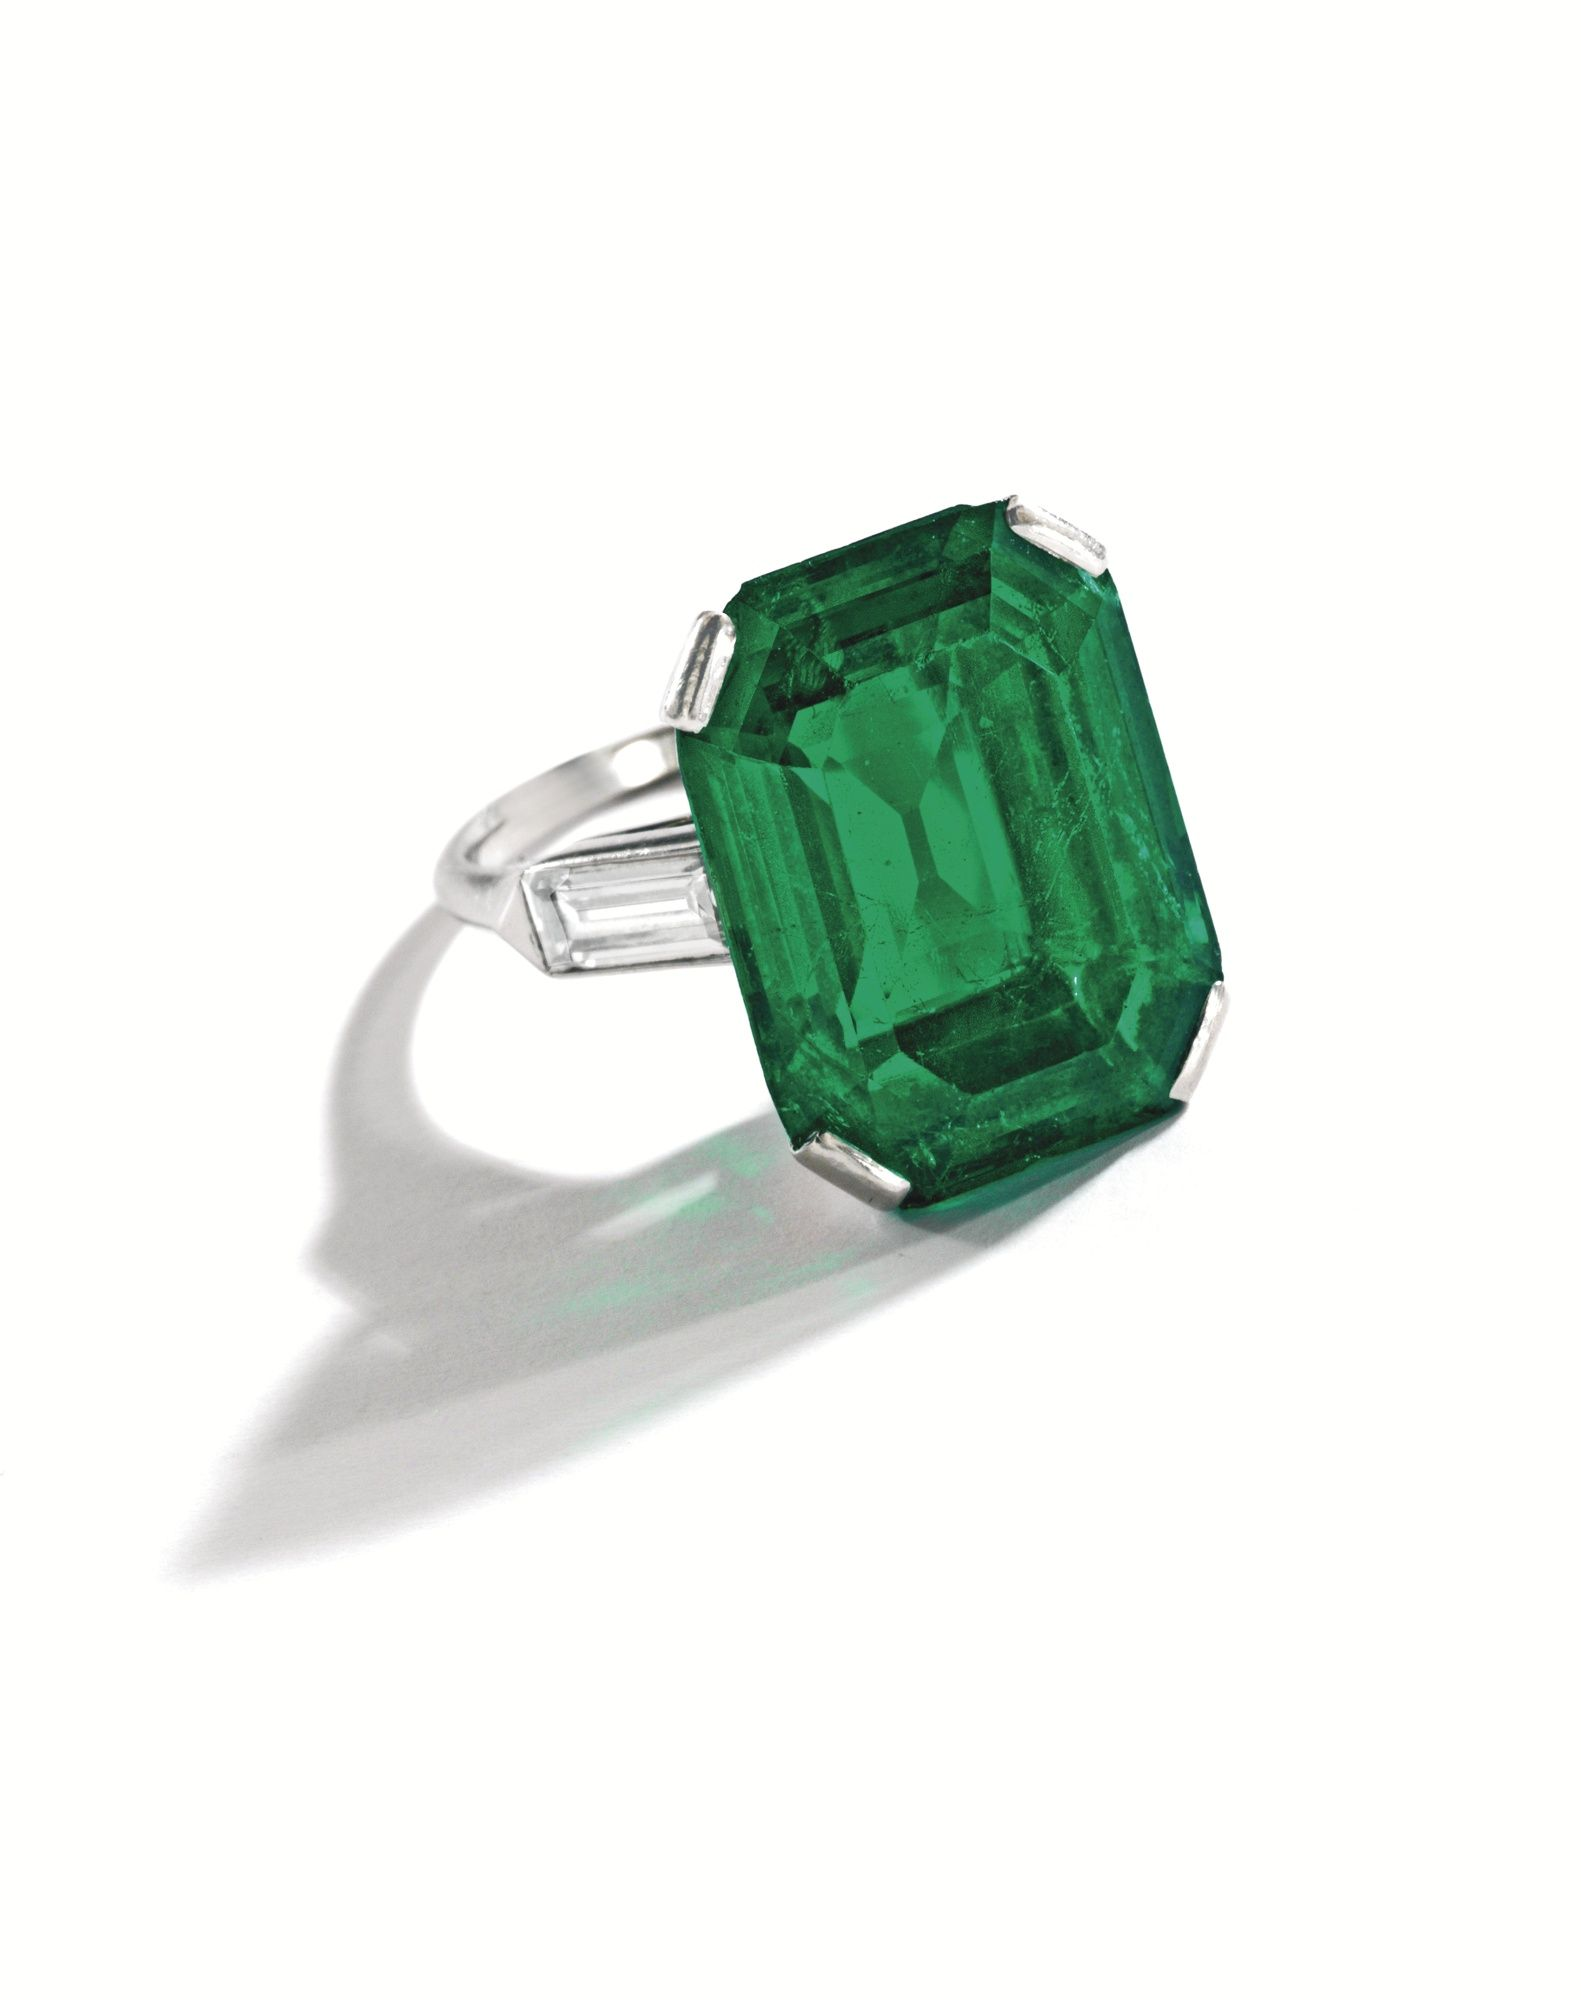 diamond and by cut weighing centered pin ring an emerald approximately platinum